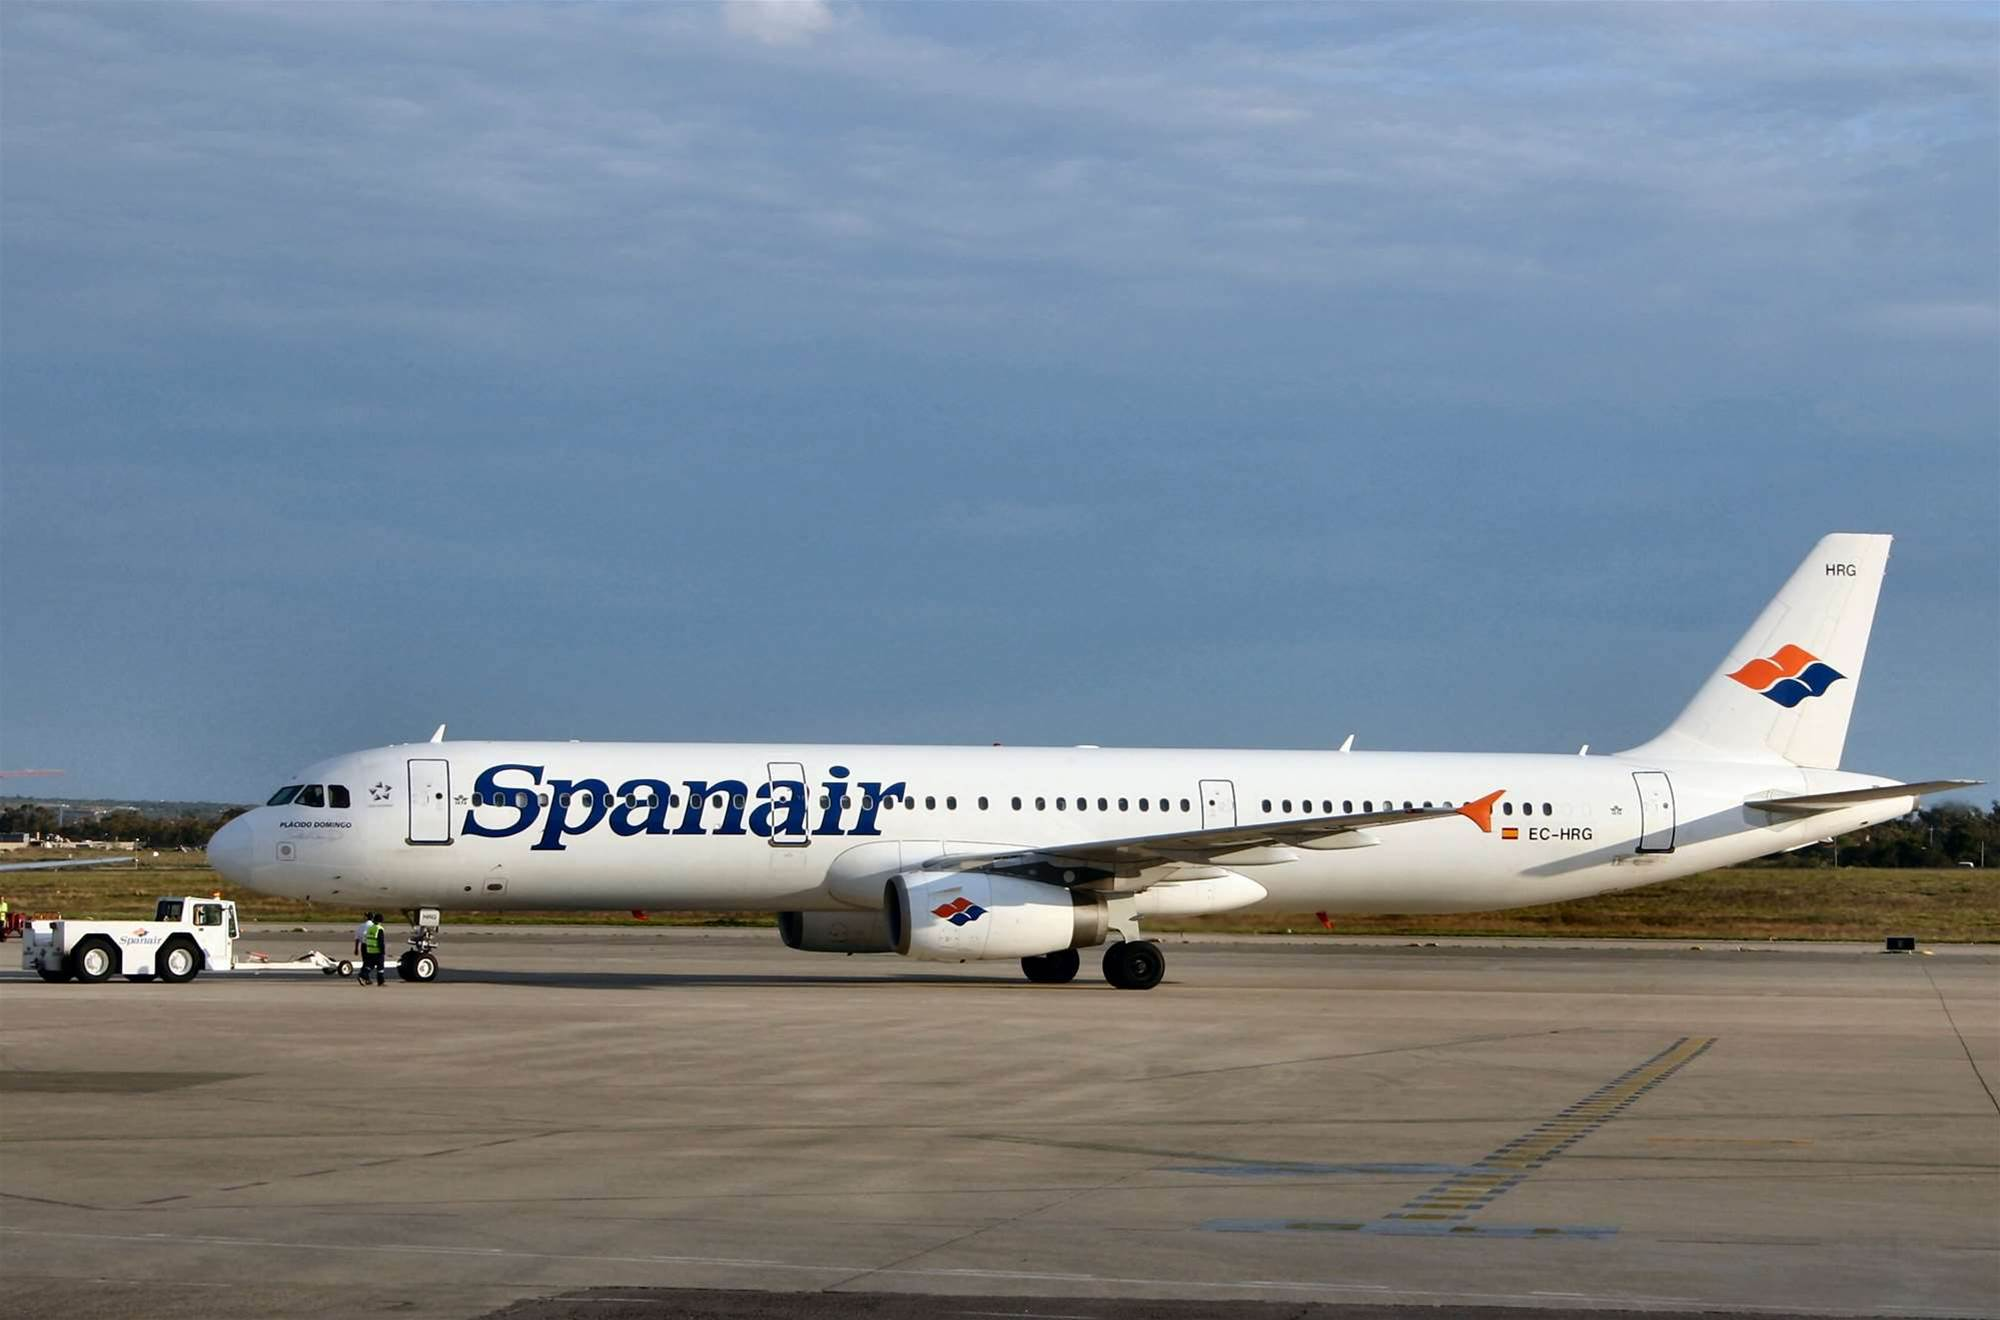 Trojans linked to Spanish air crash